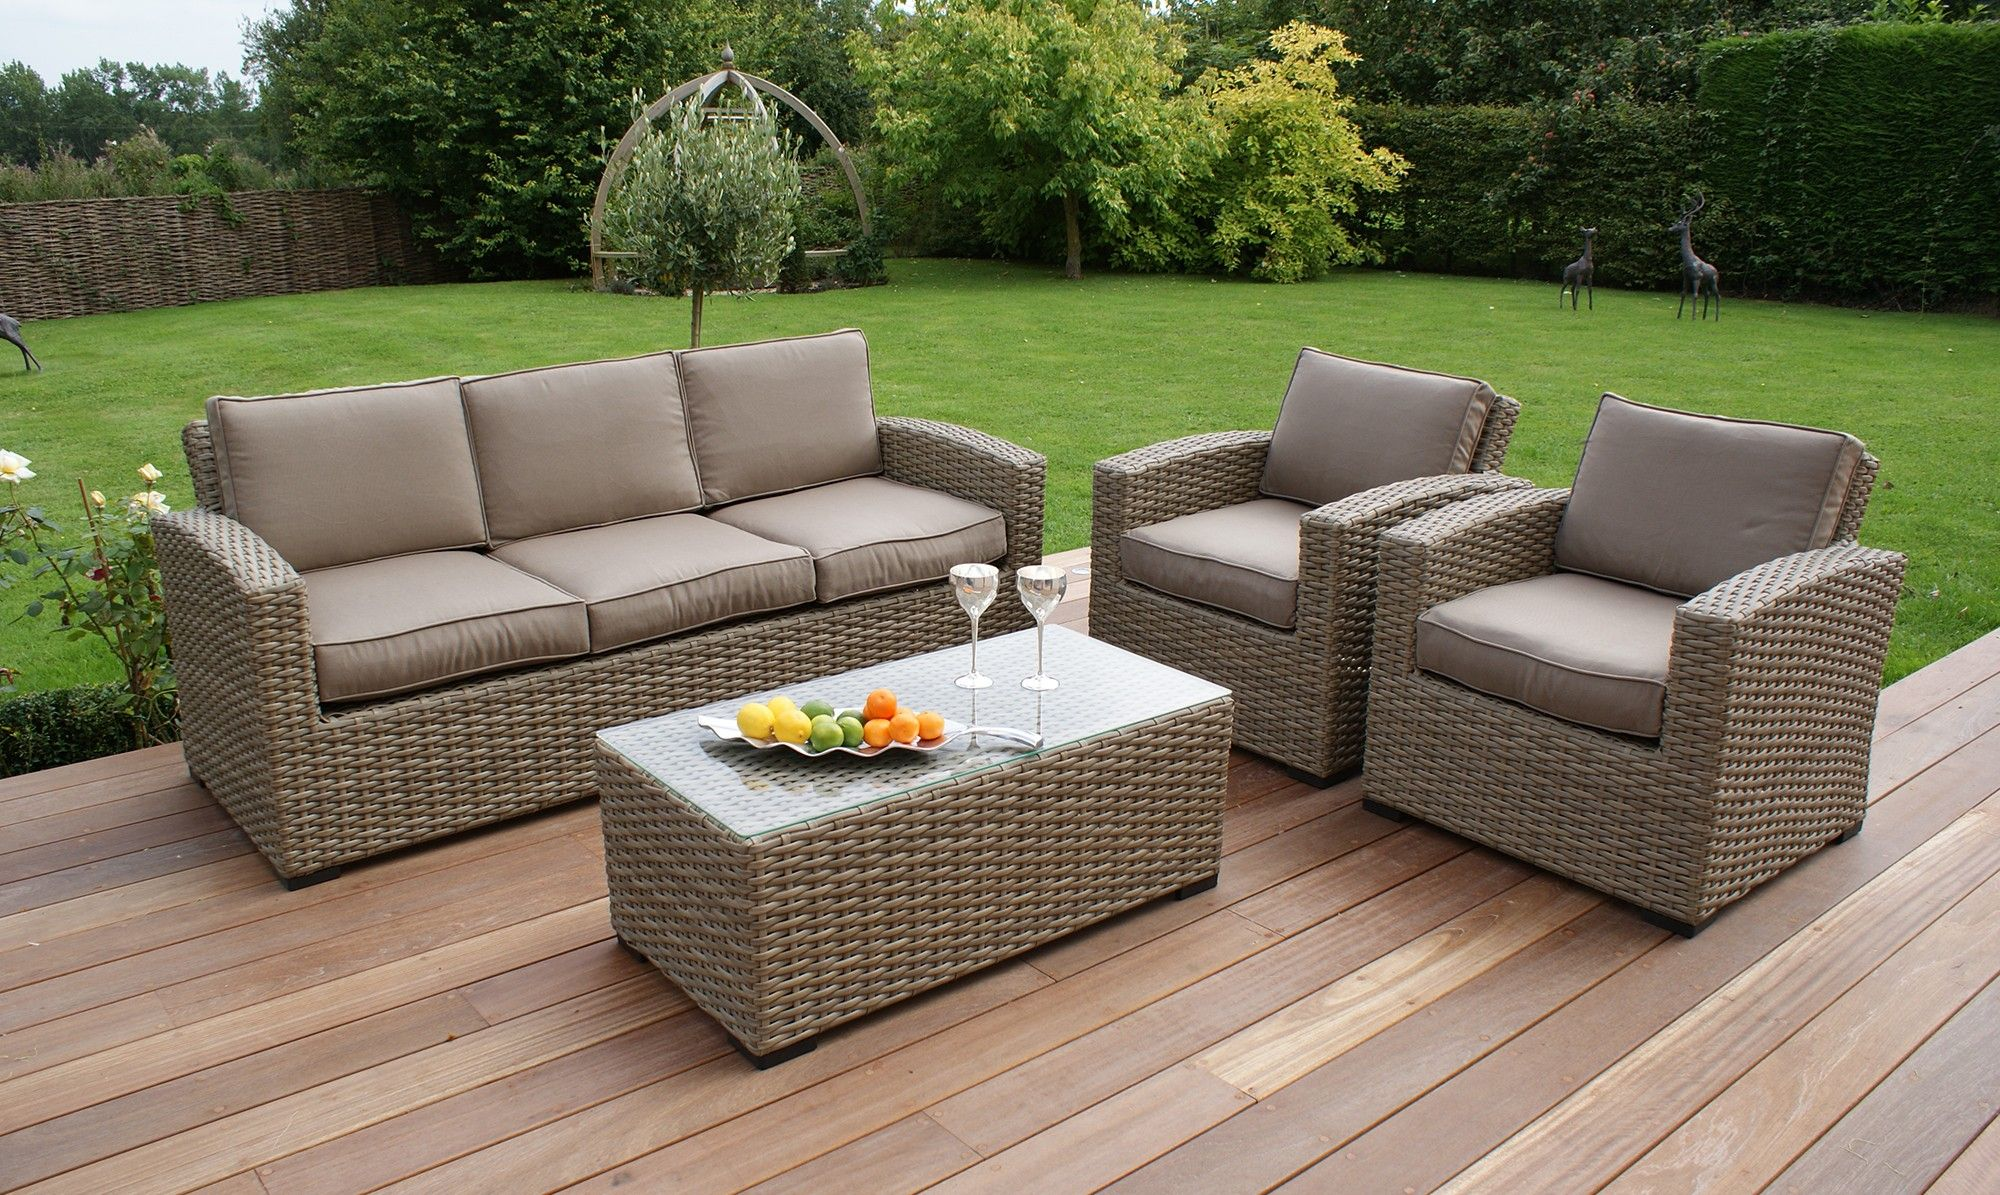 Style your Home with Rattan sofa set Outdoor wicker